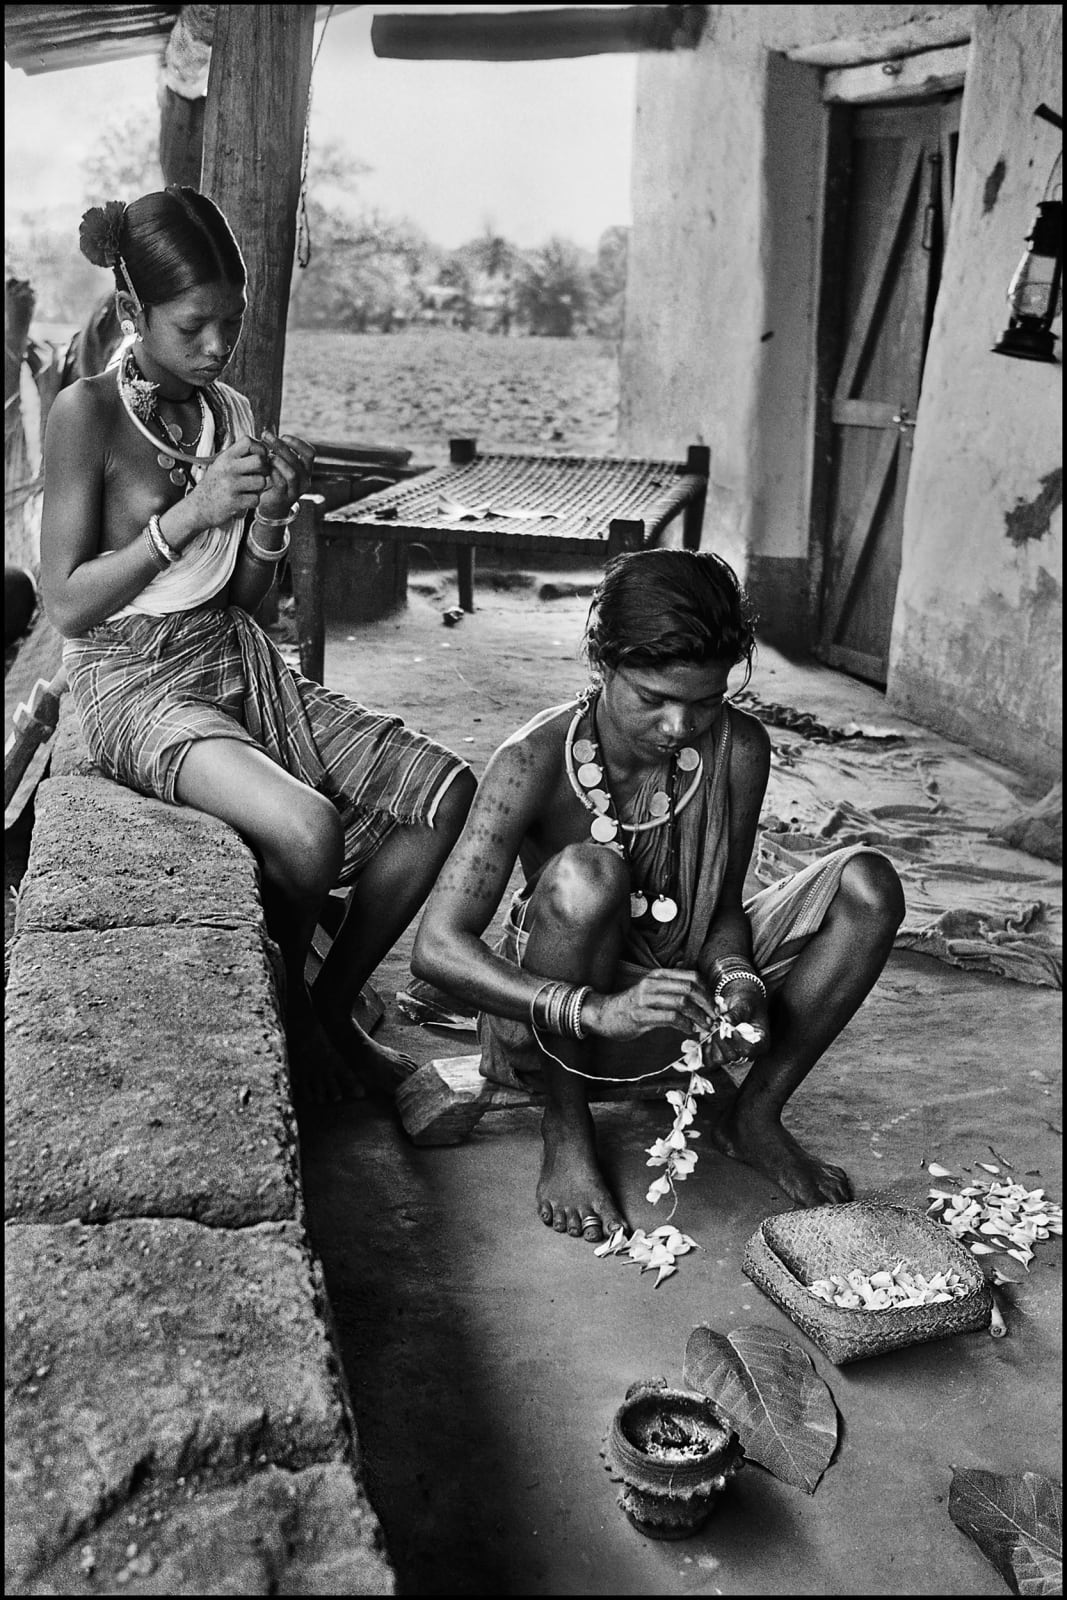 Bastar, 1984 Photograph, 2019 Limited Edition Individual Print : 15 x 22 inches (3 editions), ₹ 10,000 Available in a portfolio of 5 Photographs : 17 x 11.5 inches (19 editions), ₹ 40,000